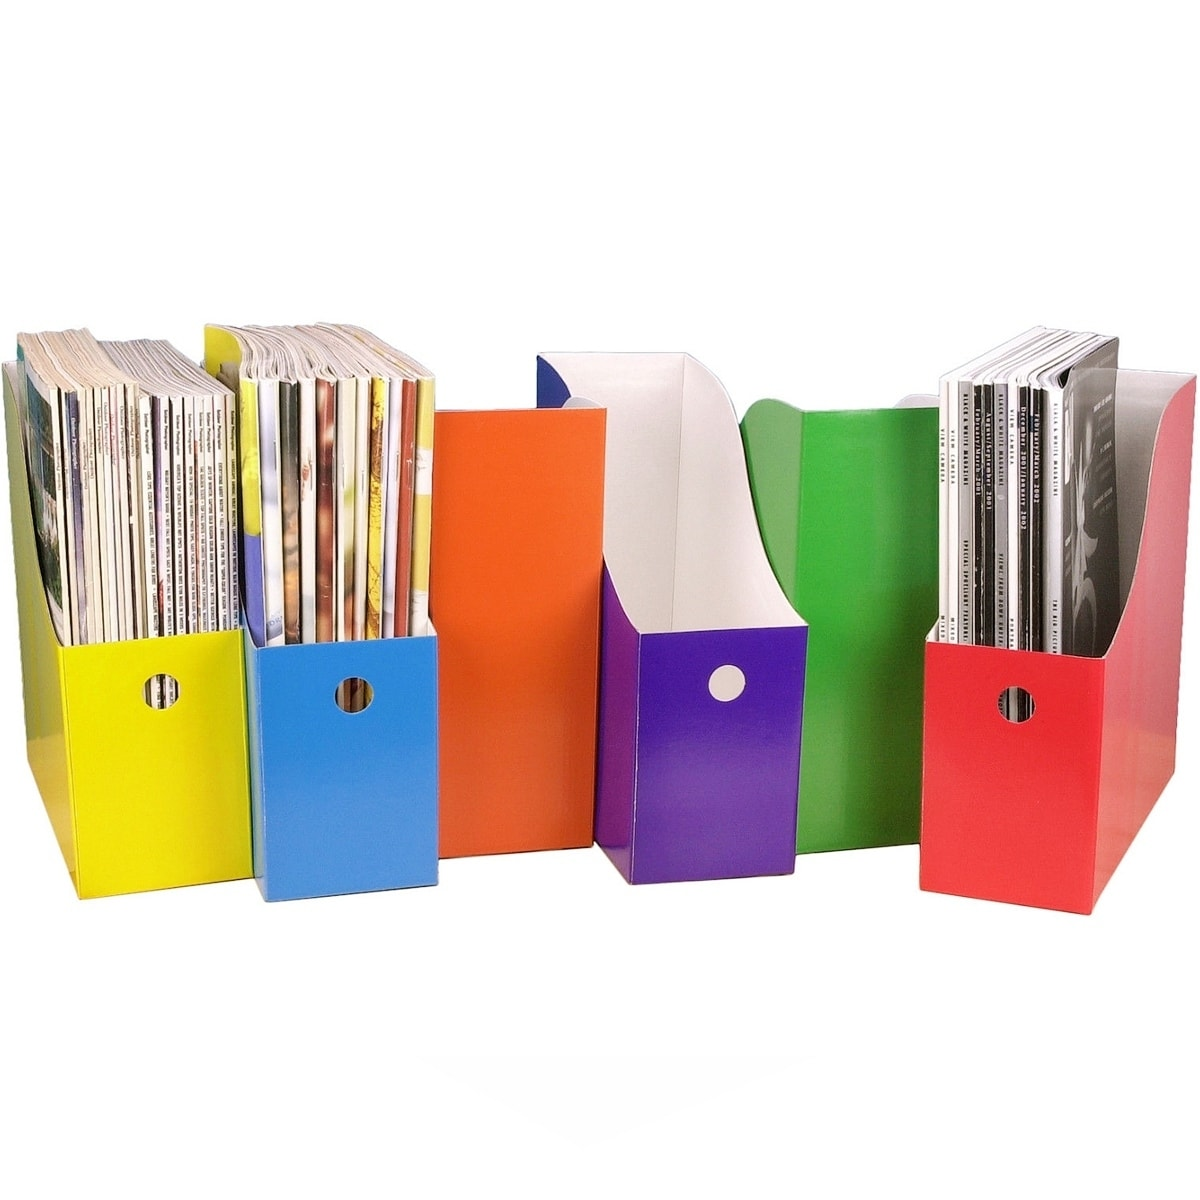 Green Mountain Imports Evelots Set of 6 Catalogs/File Holders with Adhesive Labels